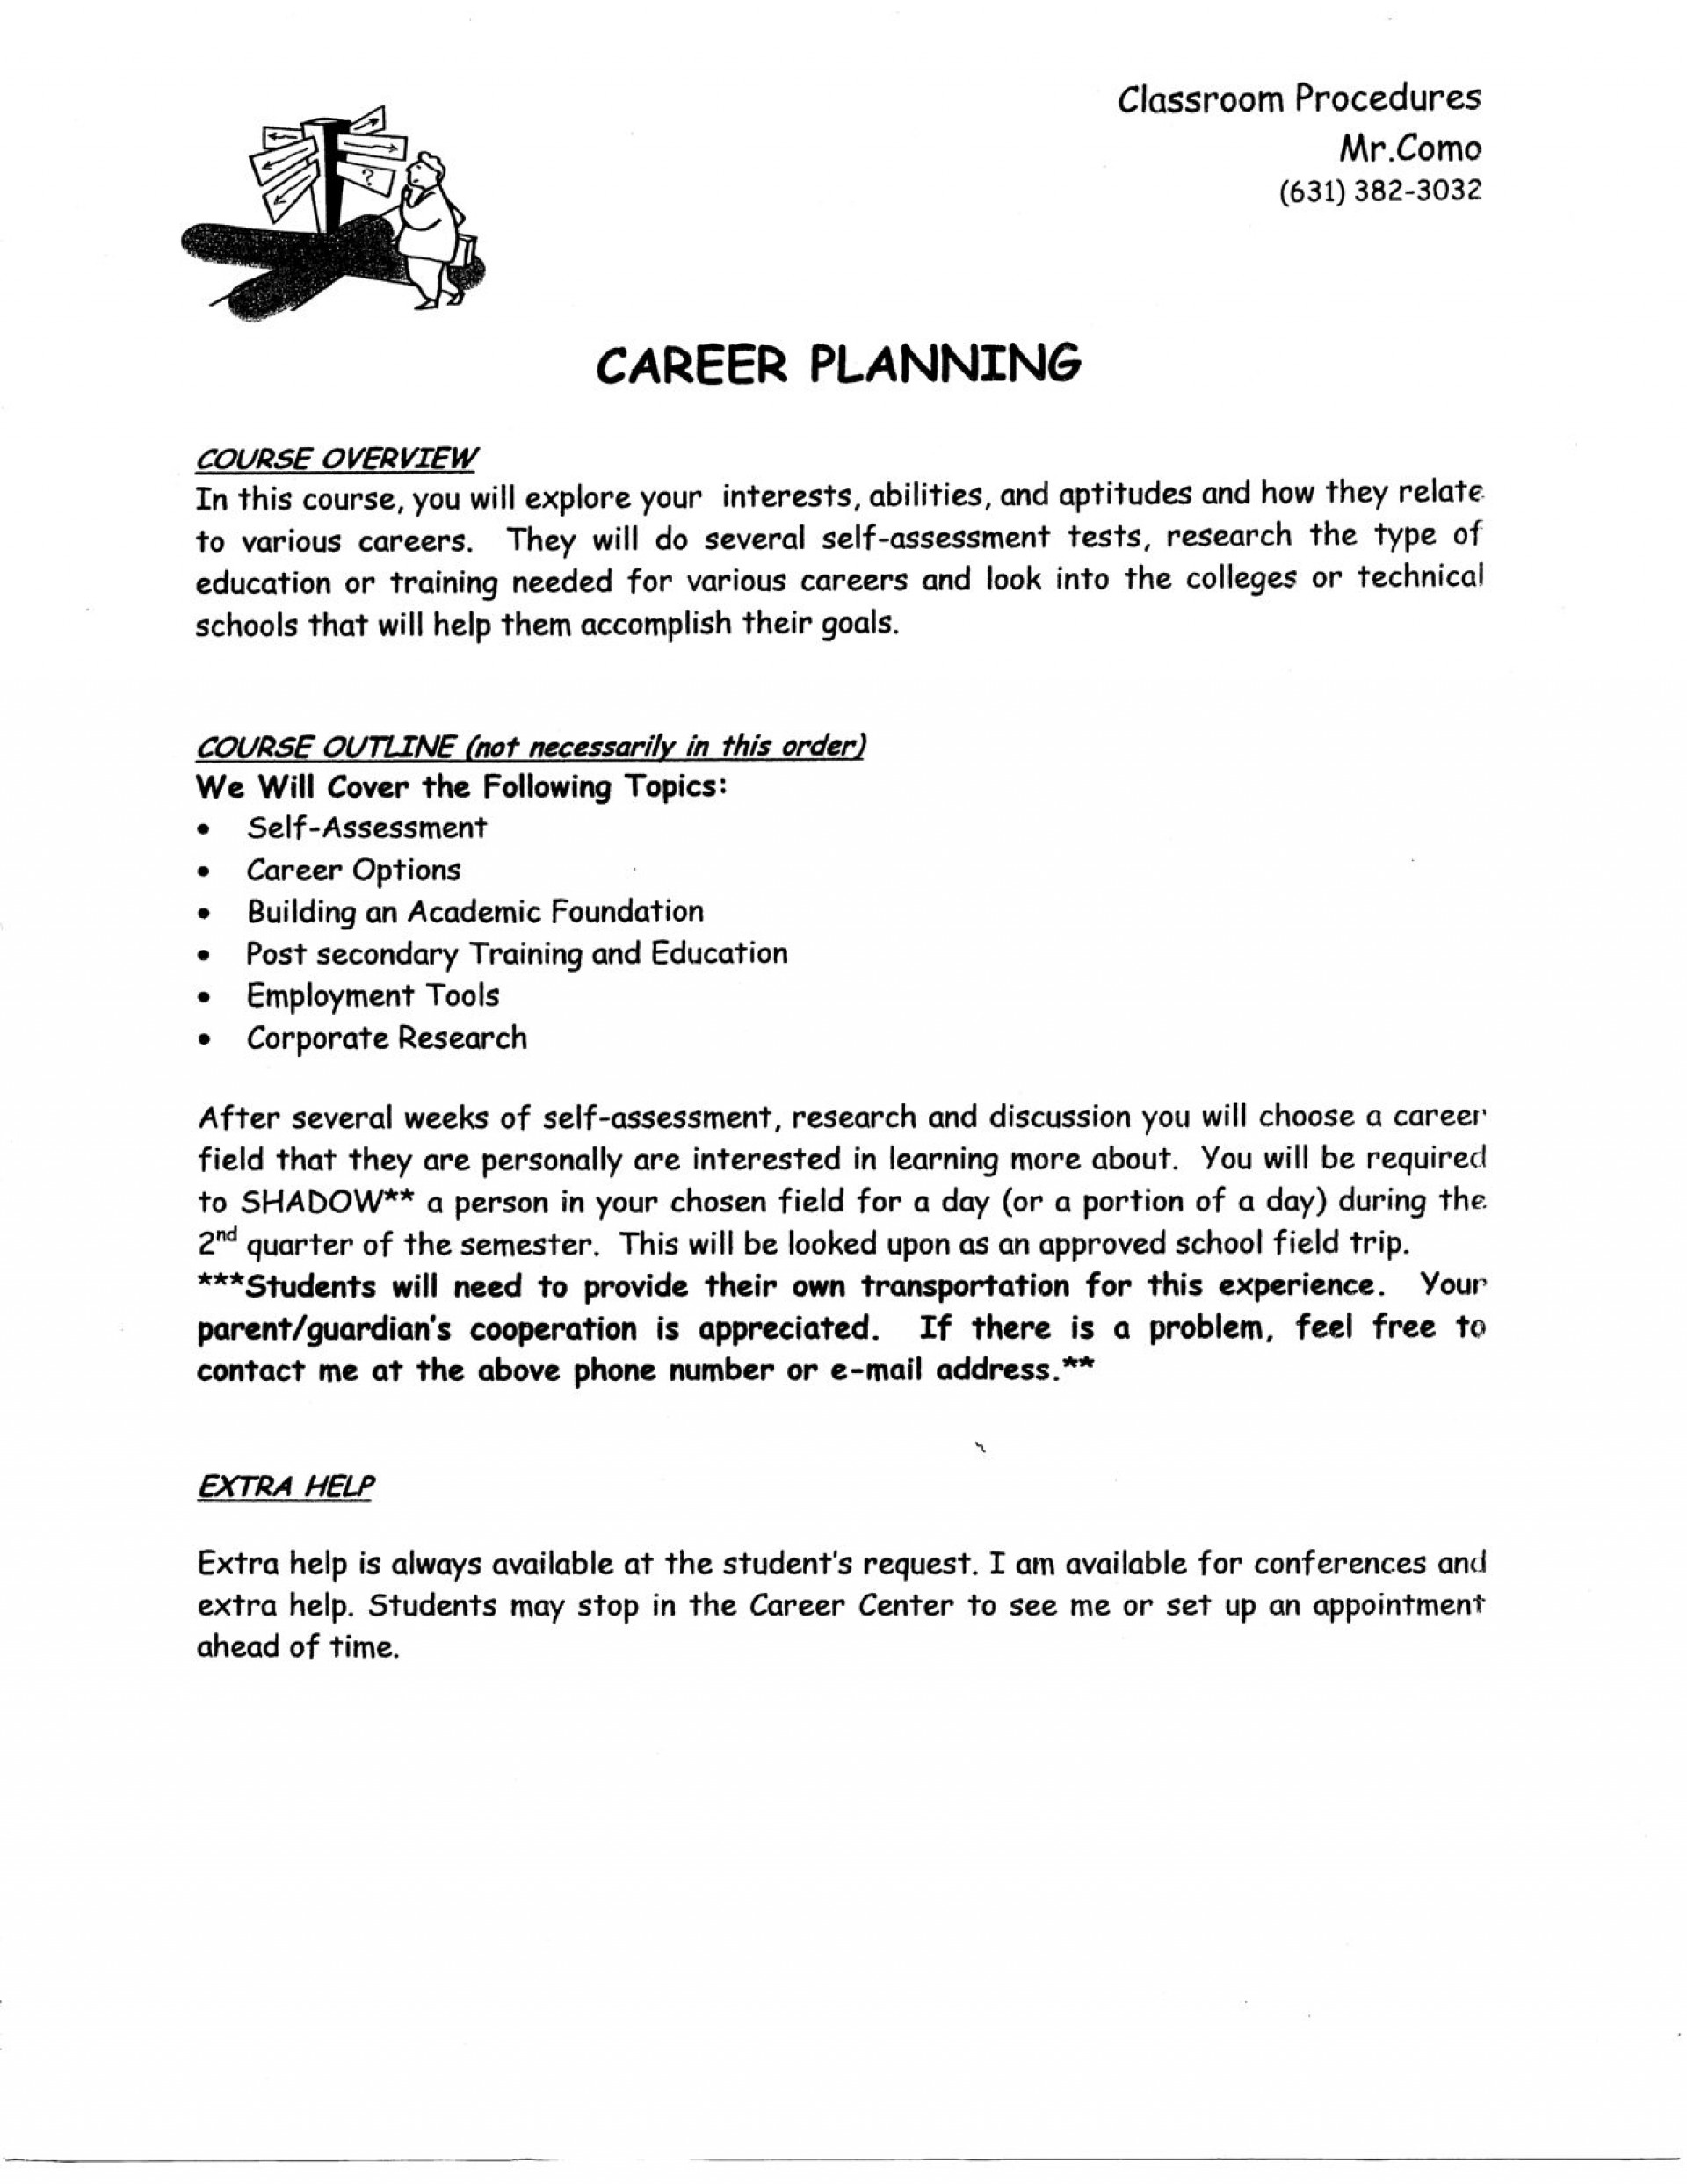 025 Essay Example Career Planning002 College Application Singular Outline Pdf Layout 1920